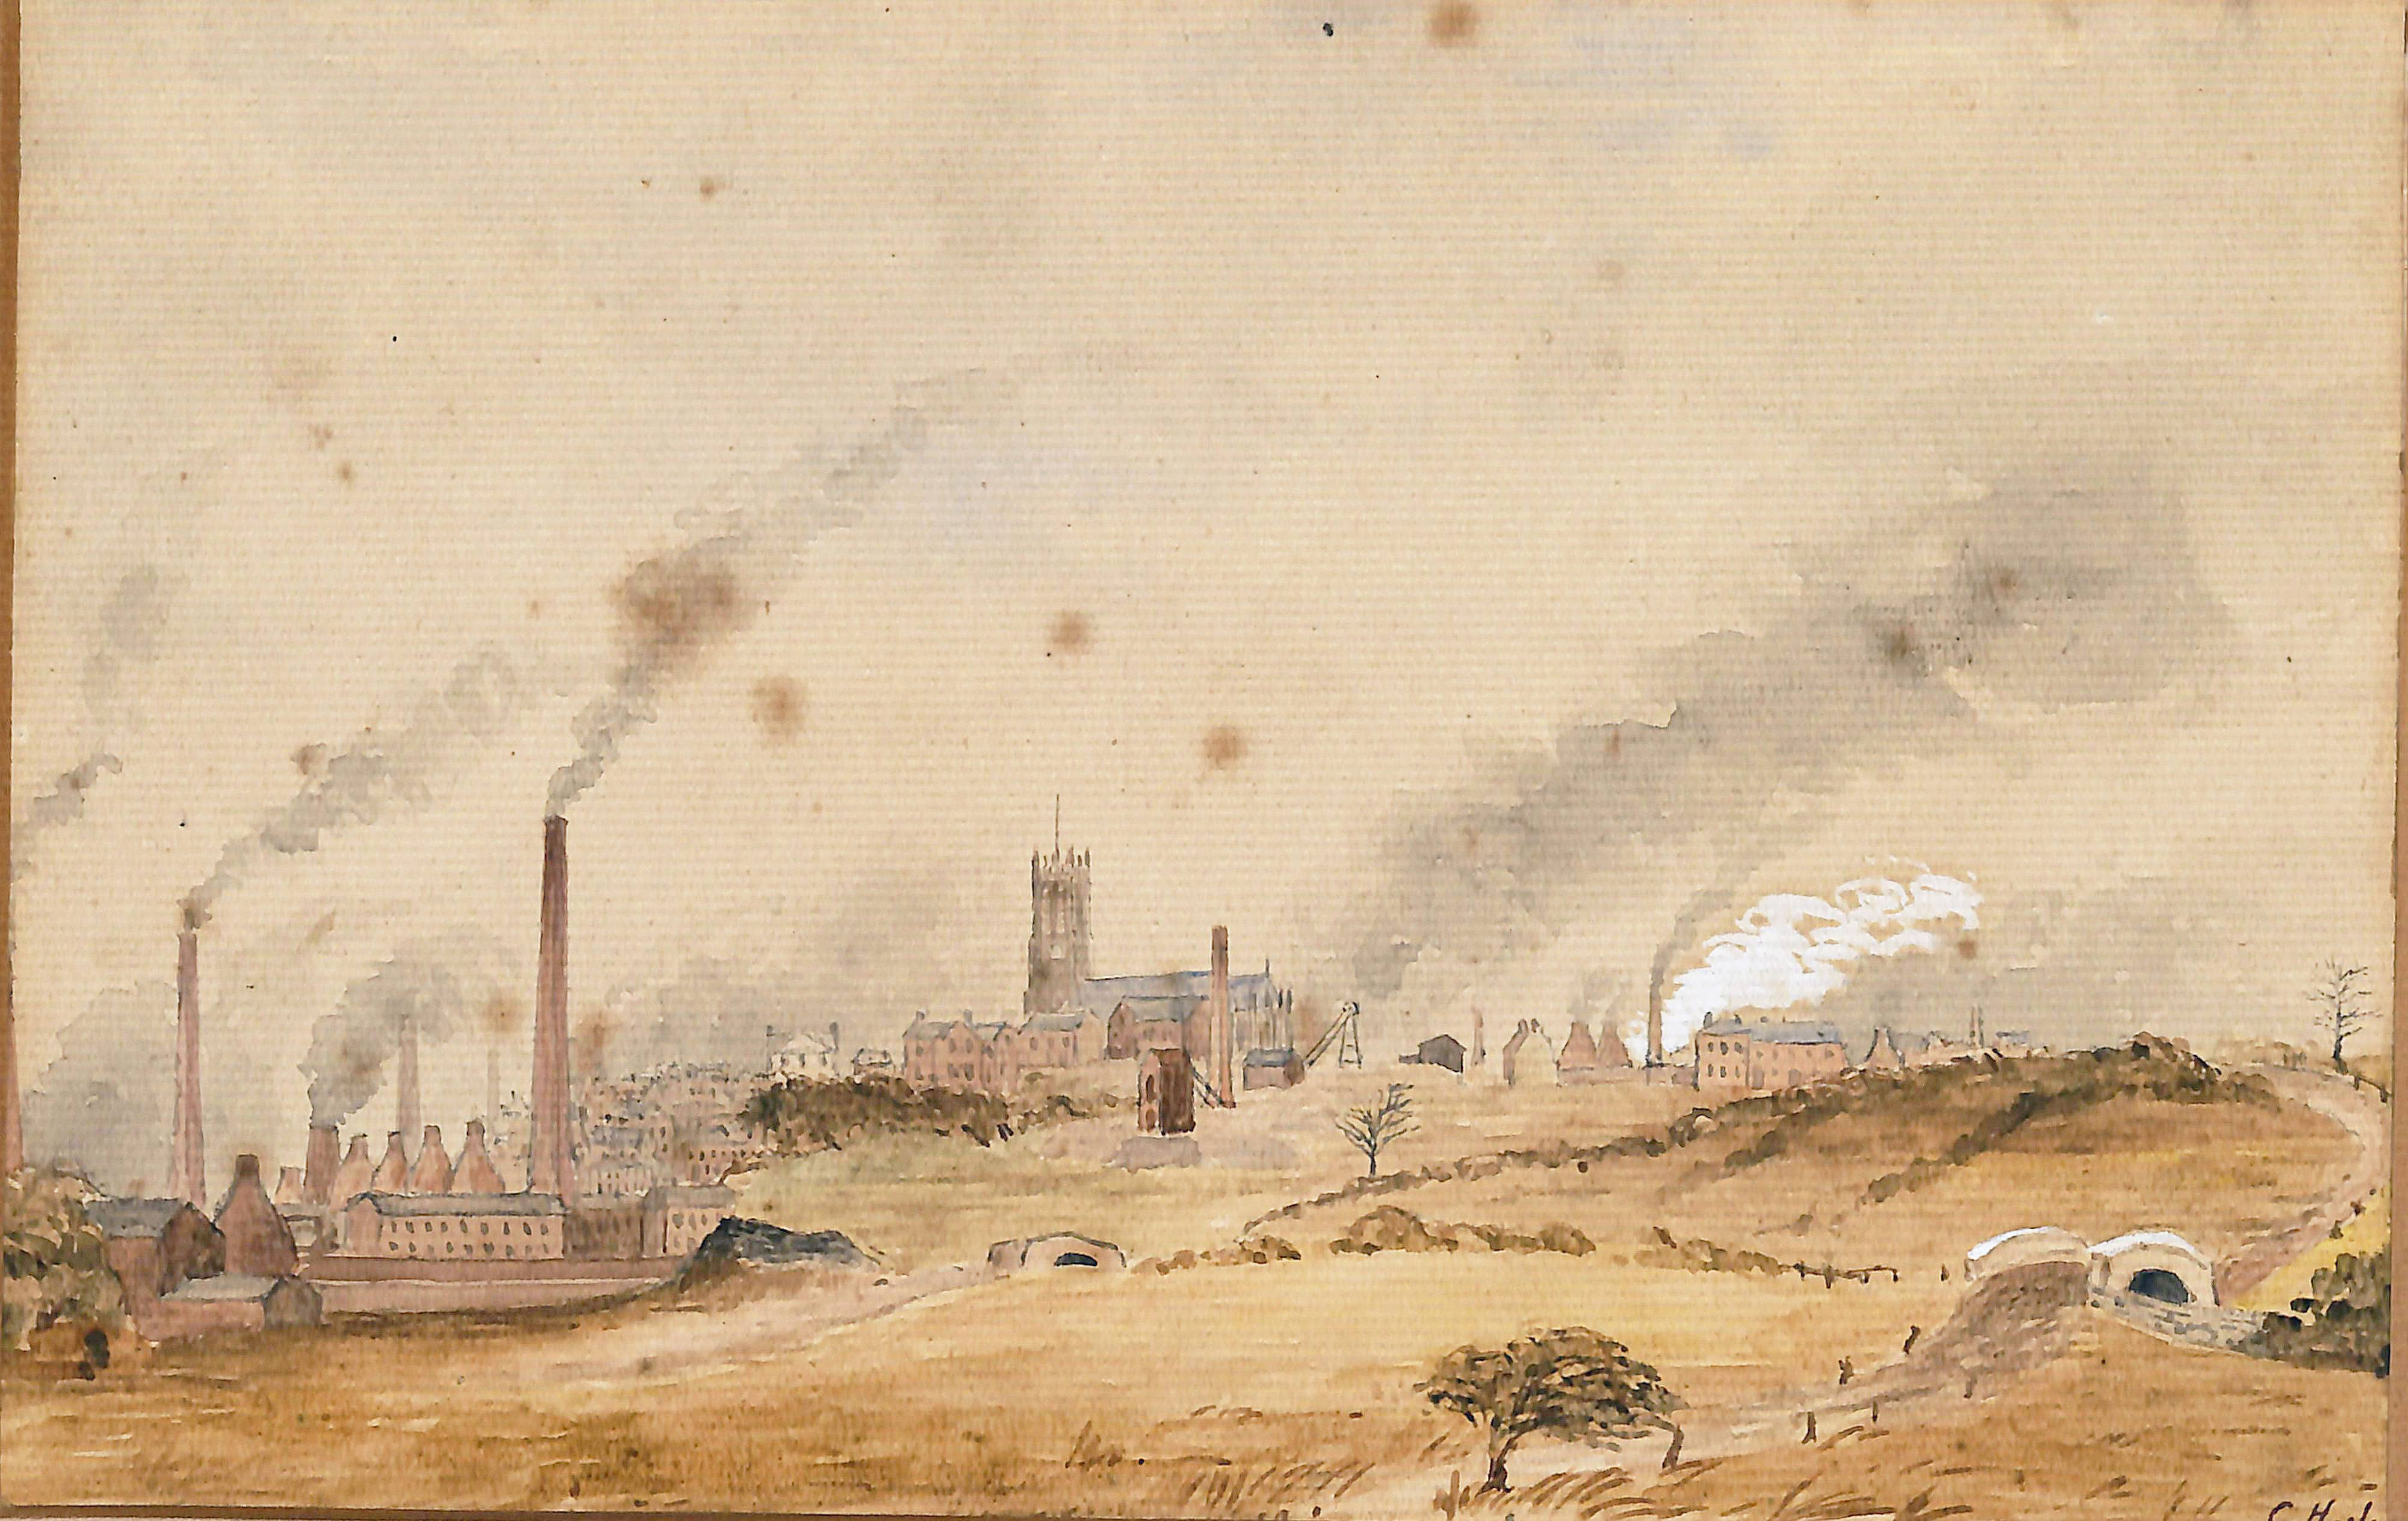 Watercolour painting. A church with a tall square tower is visible in the centre distance. On the left is a pottery works with multiple tall chimneys. On the right is a small stone bridge.